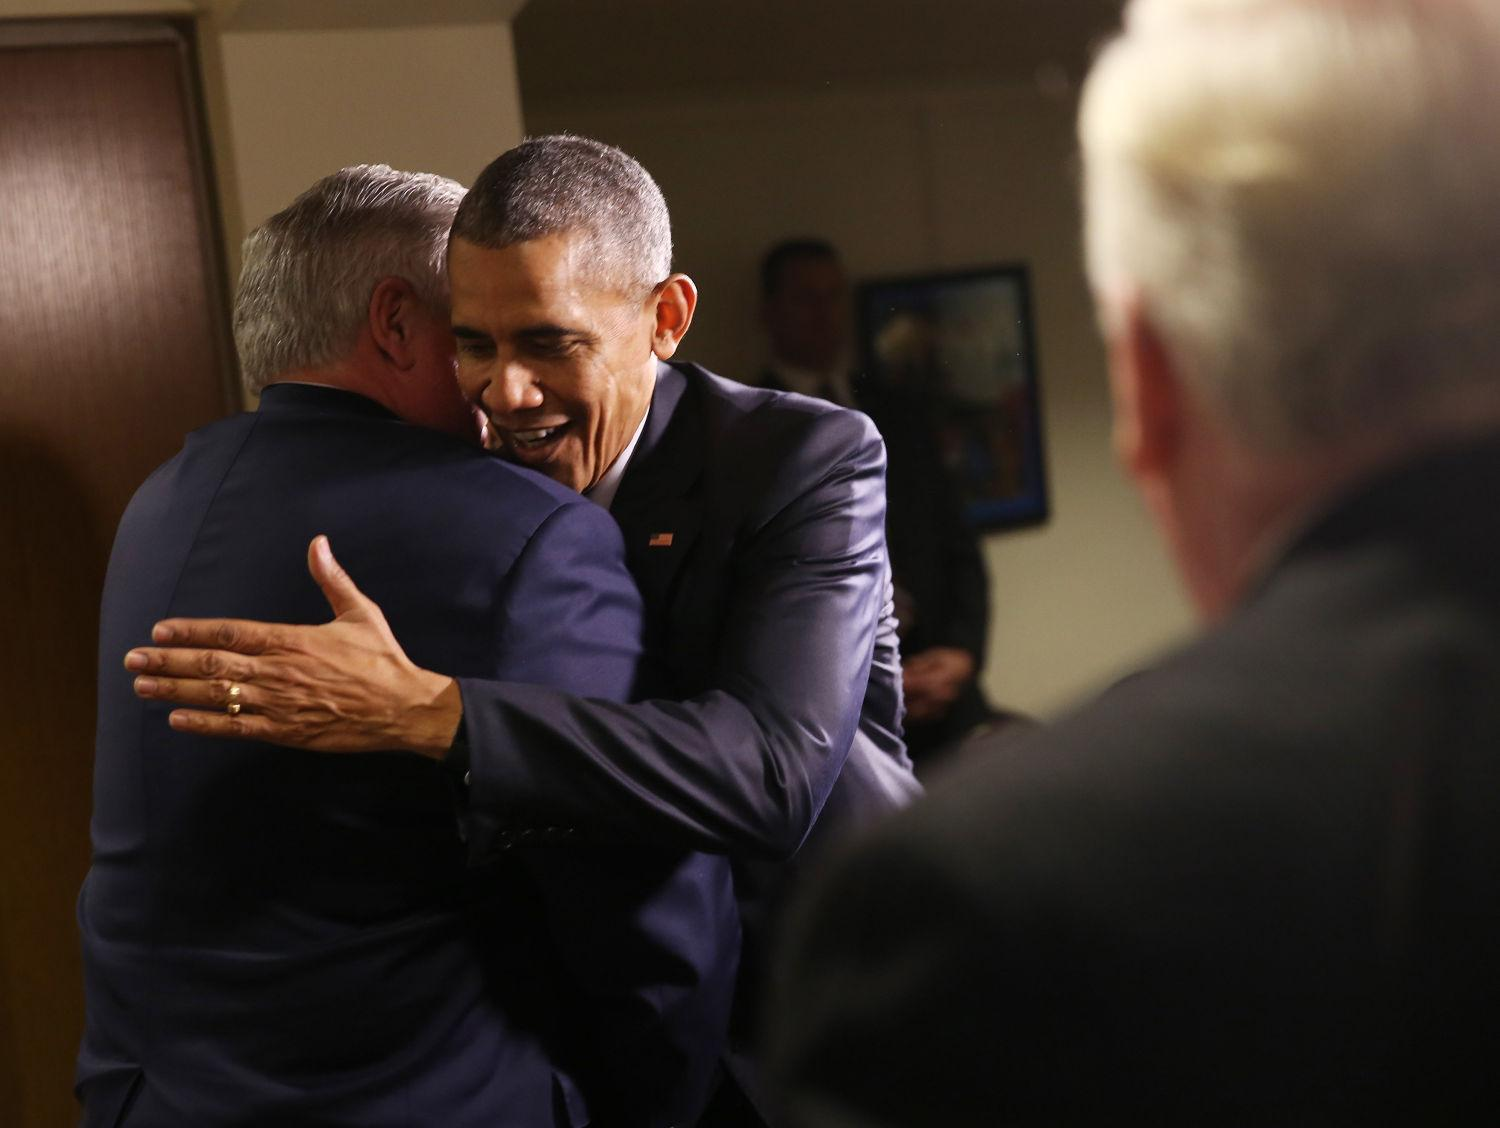 President Obama, center, hugs former Illinois Sen. Kirk Dillard, left, on Feb. 10 in Springfield, before meeting former colleagues from the Illinois General Assembly. They discussed the issue of partisanship in a meeting with Tribune Publications White House Correspondent Christi Parsons, right. (TNS)